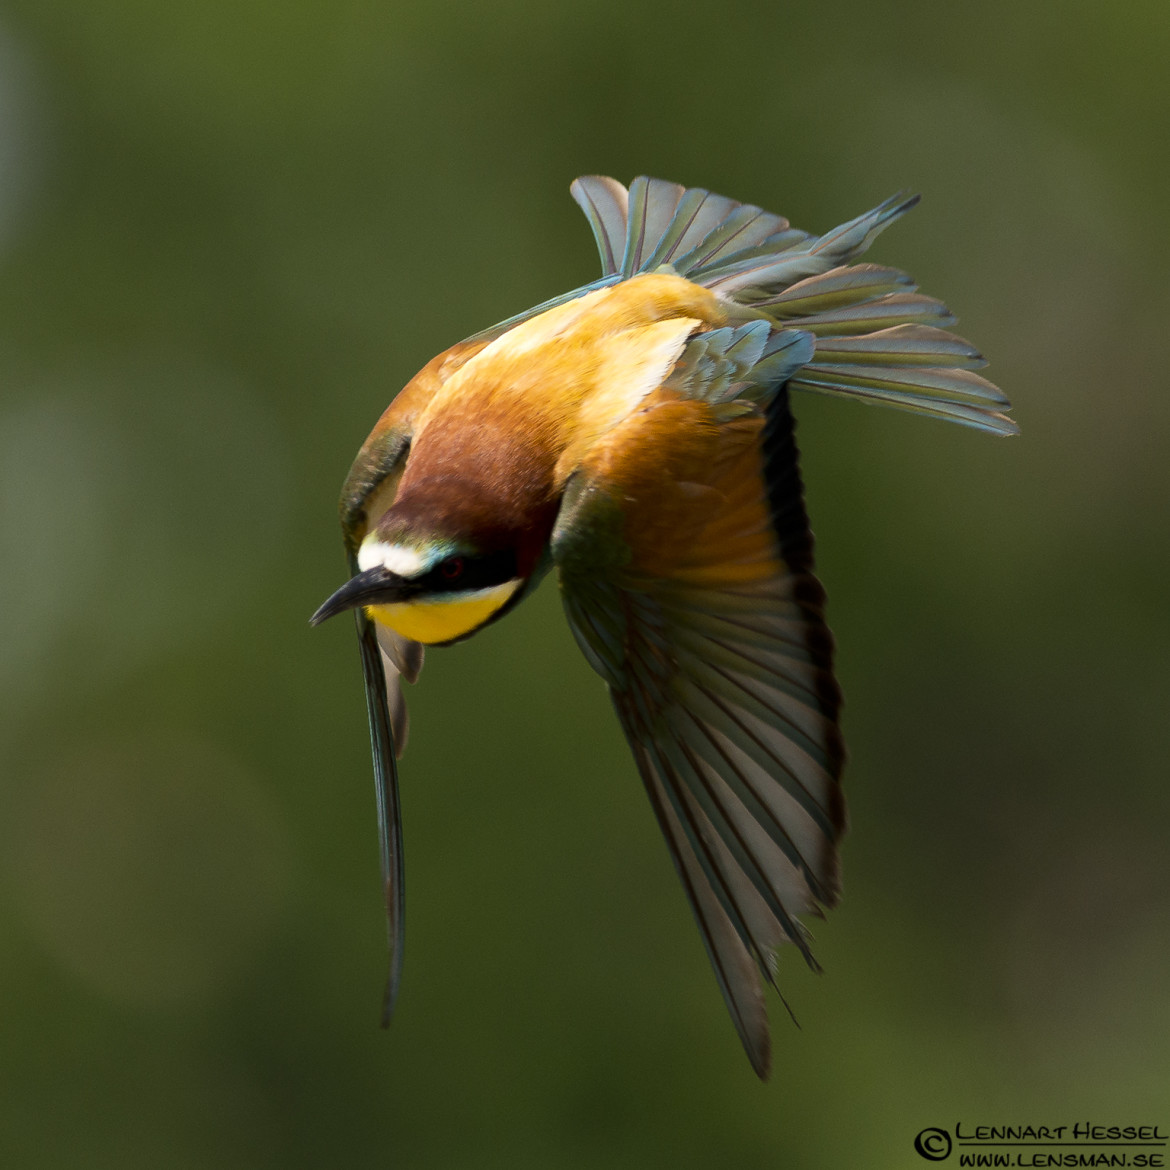 European Bee-eater with an intent, site